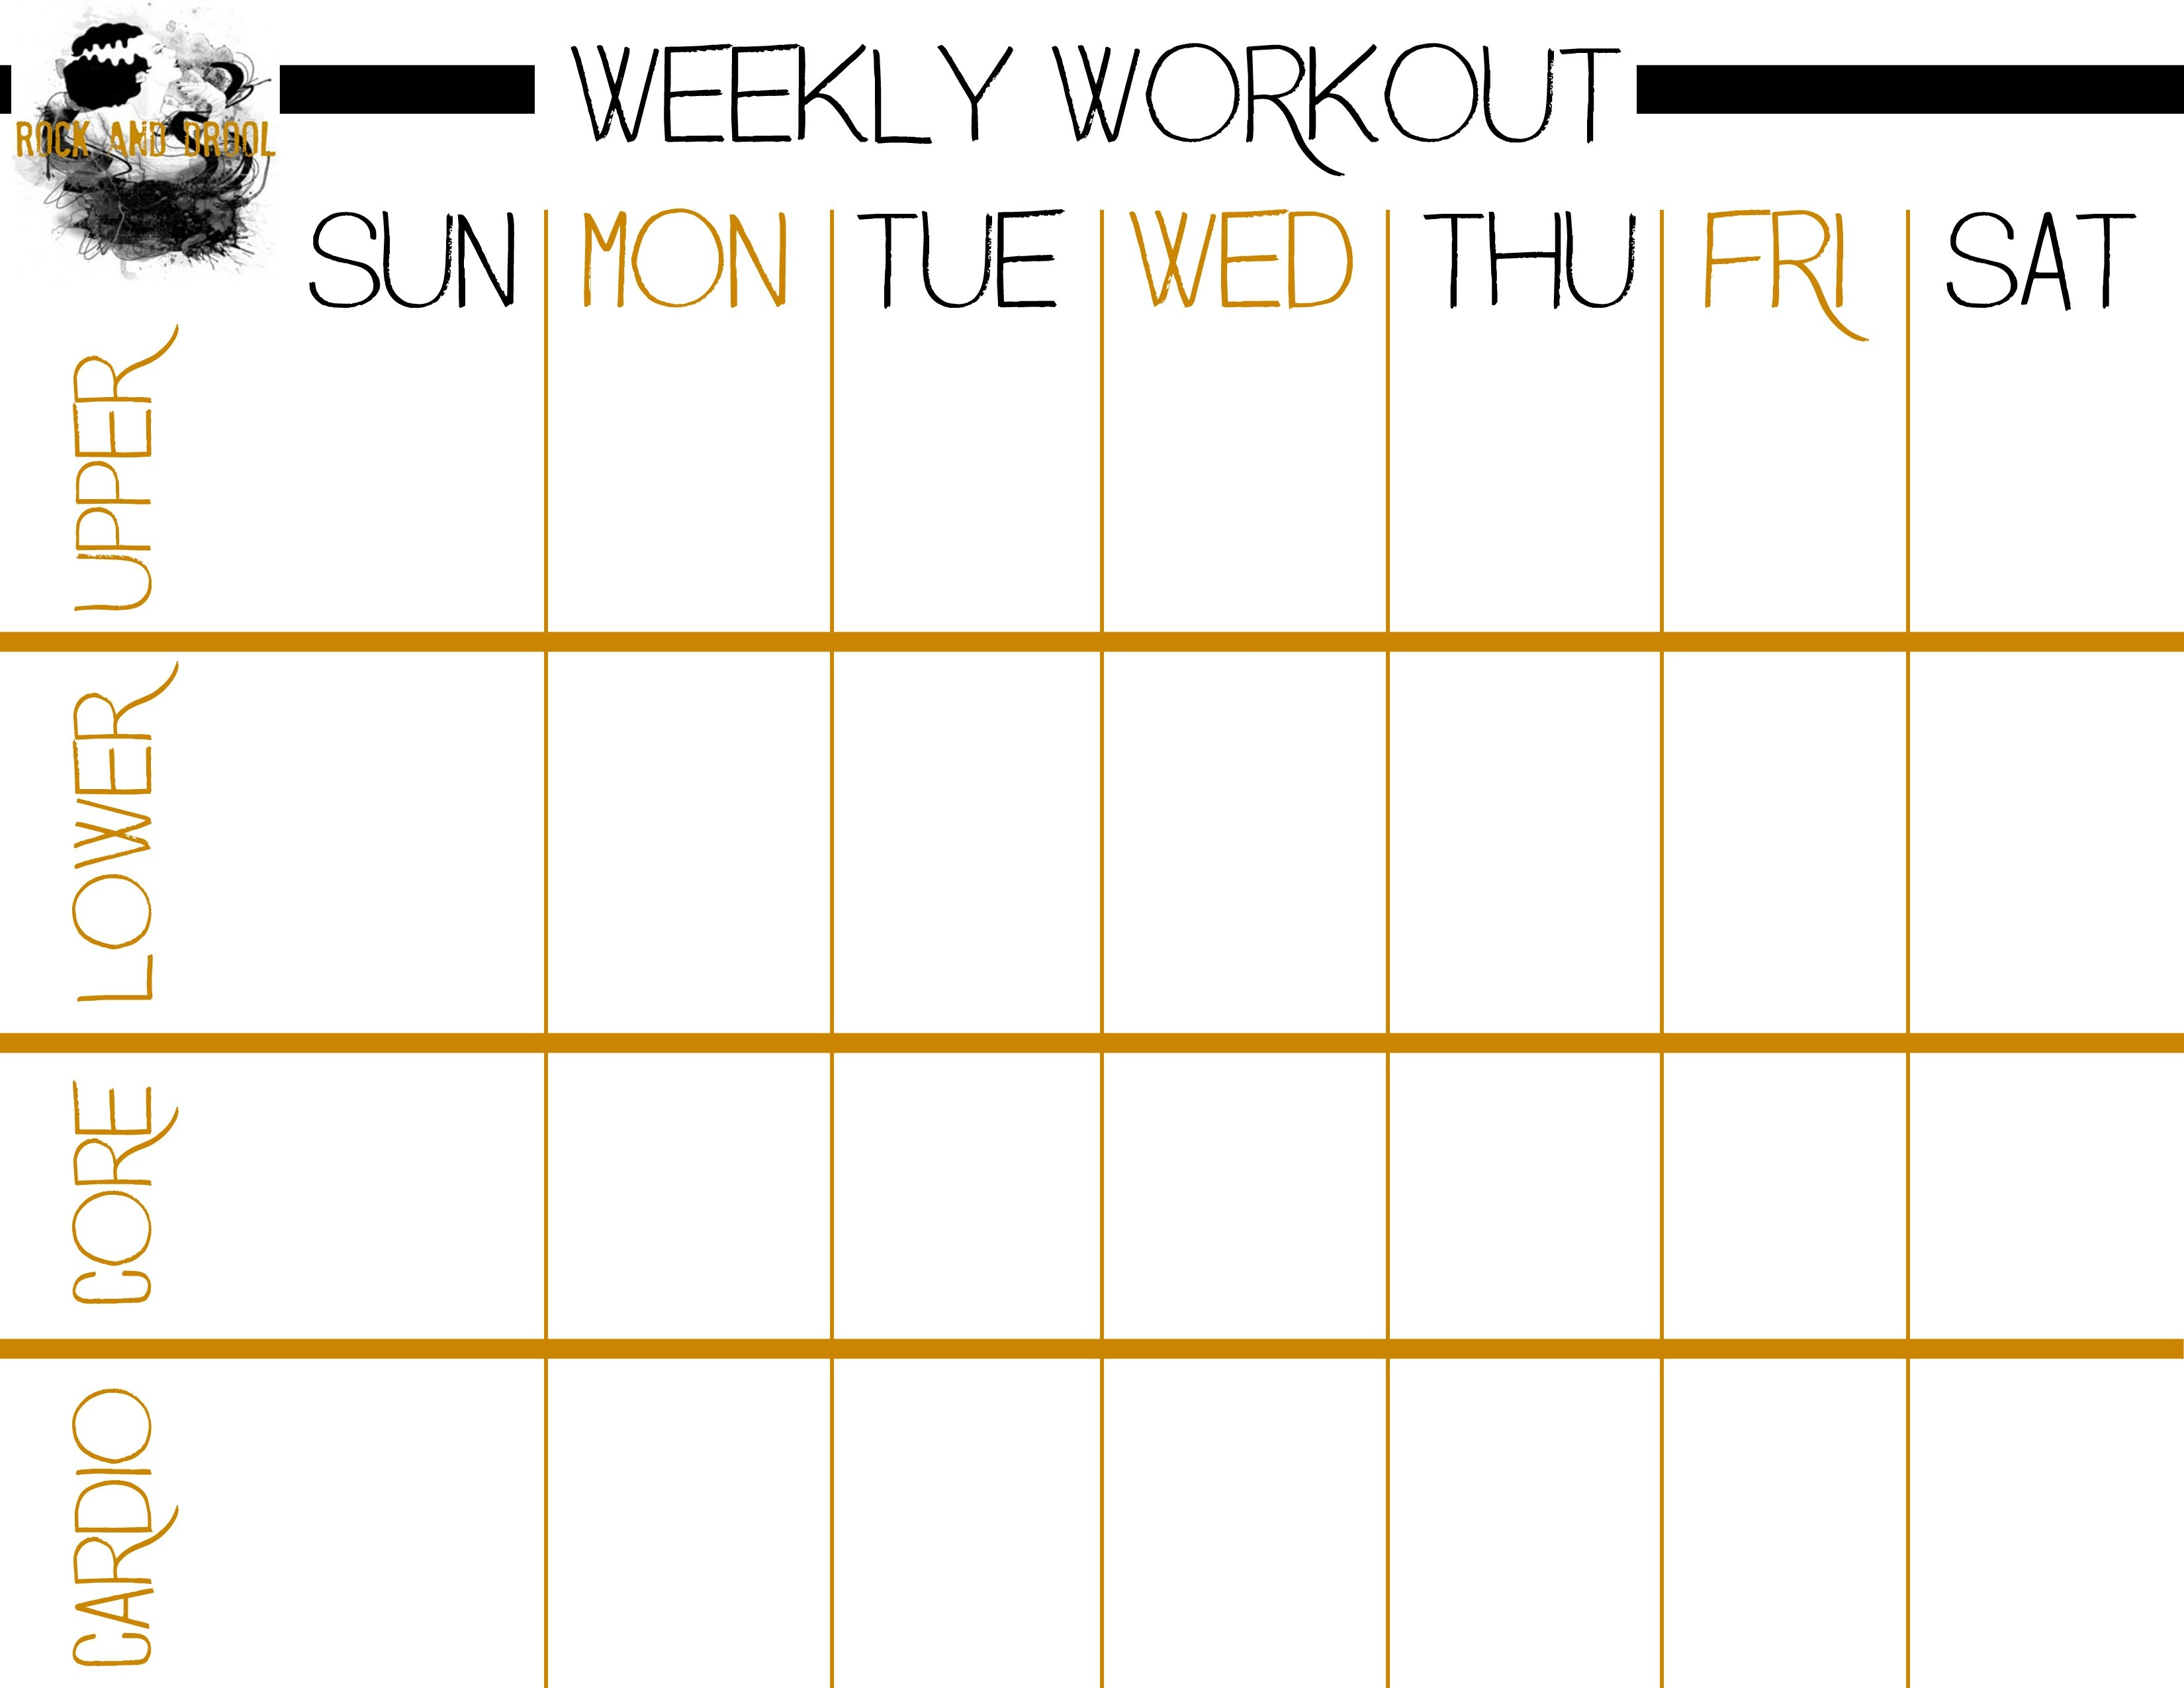 Printable Work Out Routines Unique Basic Full Body Workout Plus Free - Free Printable Workout Routines